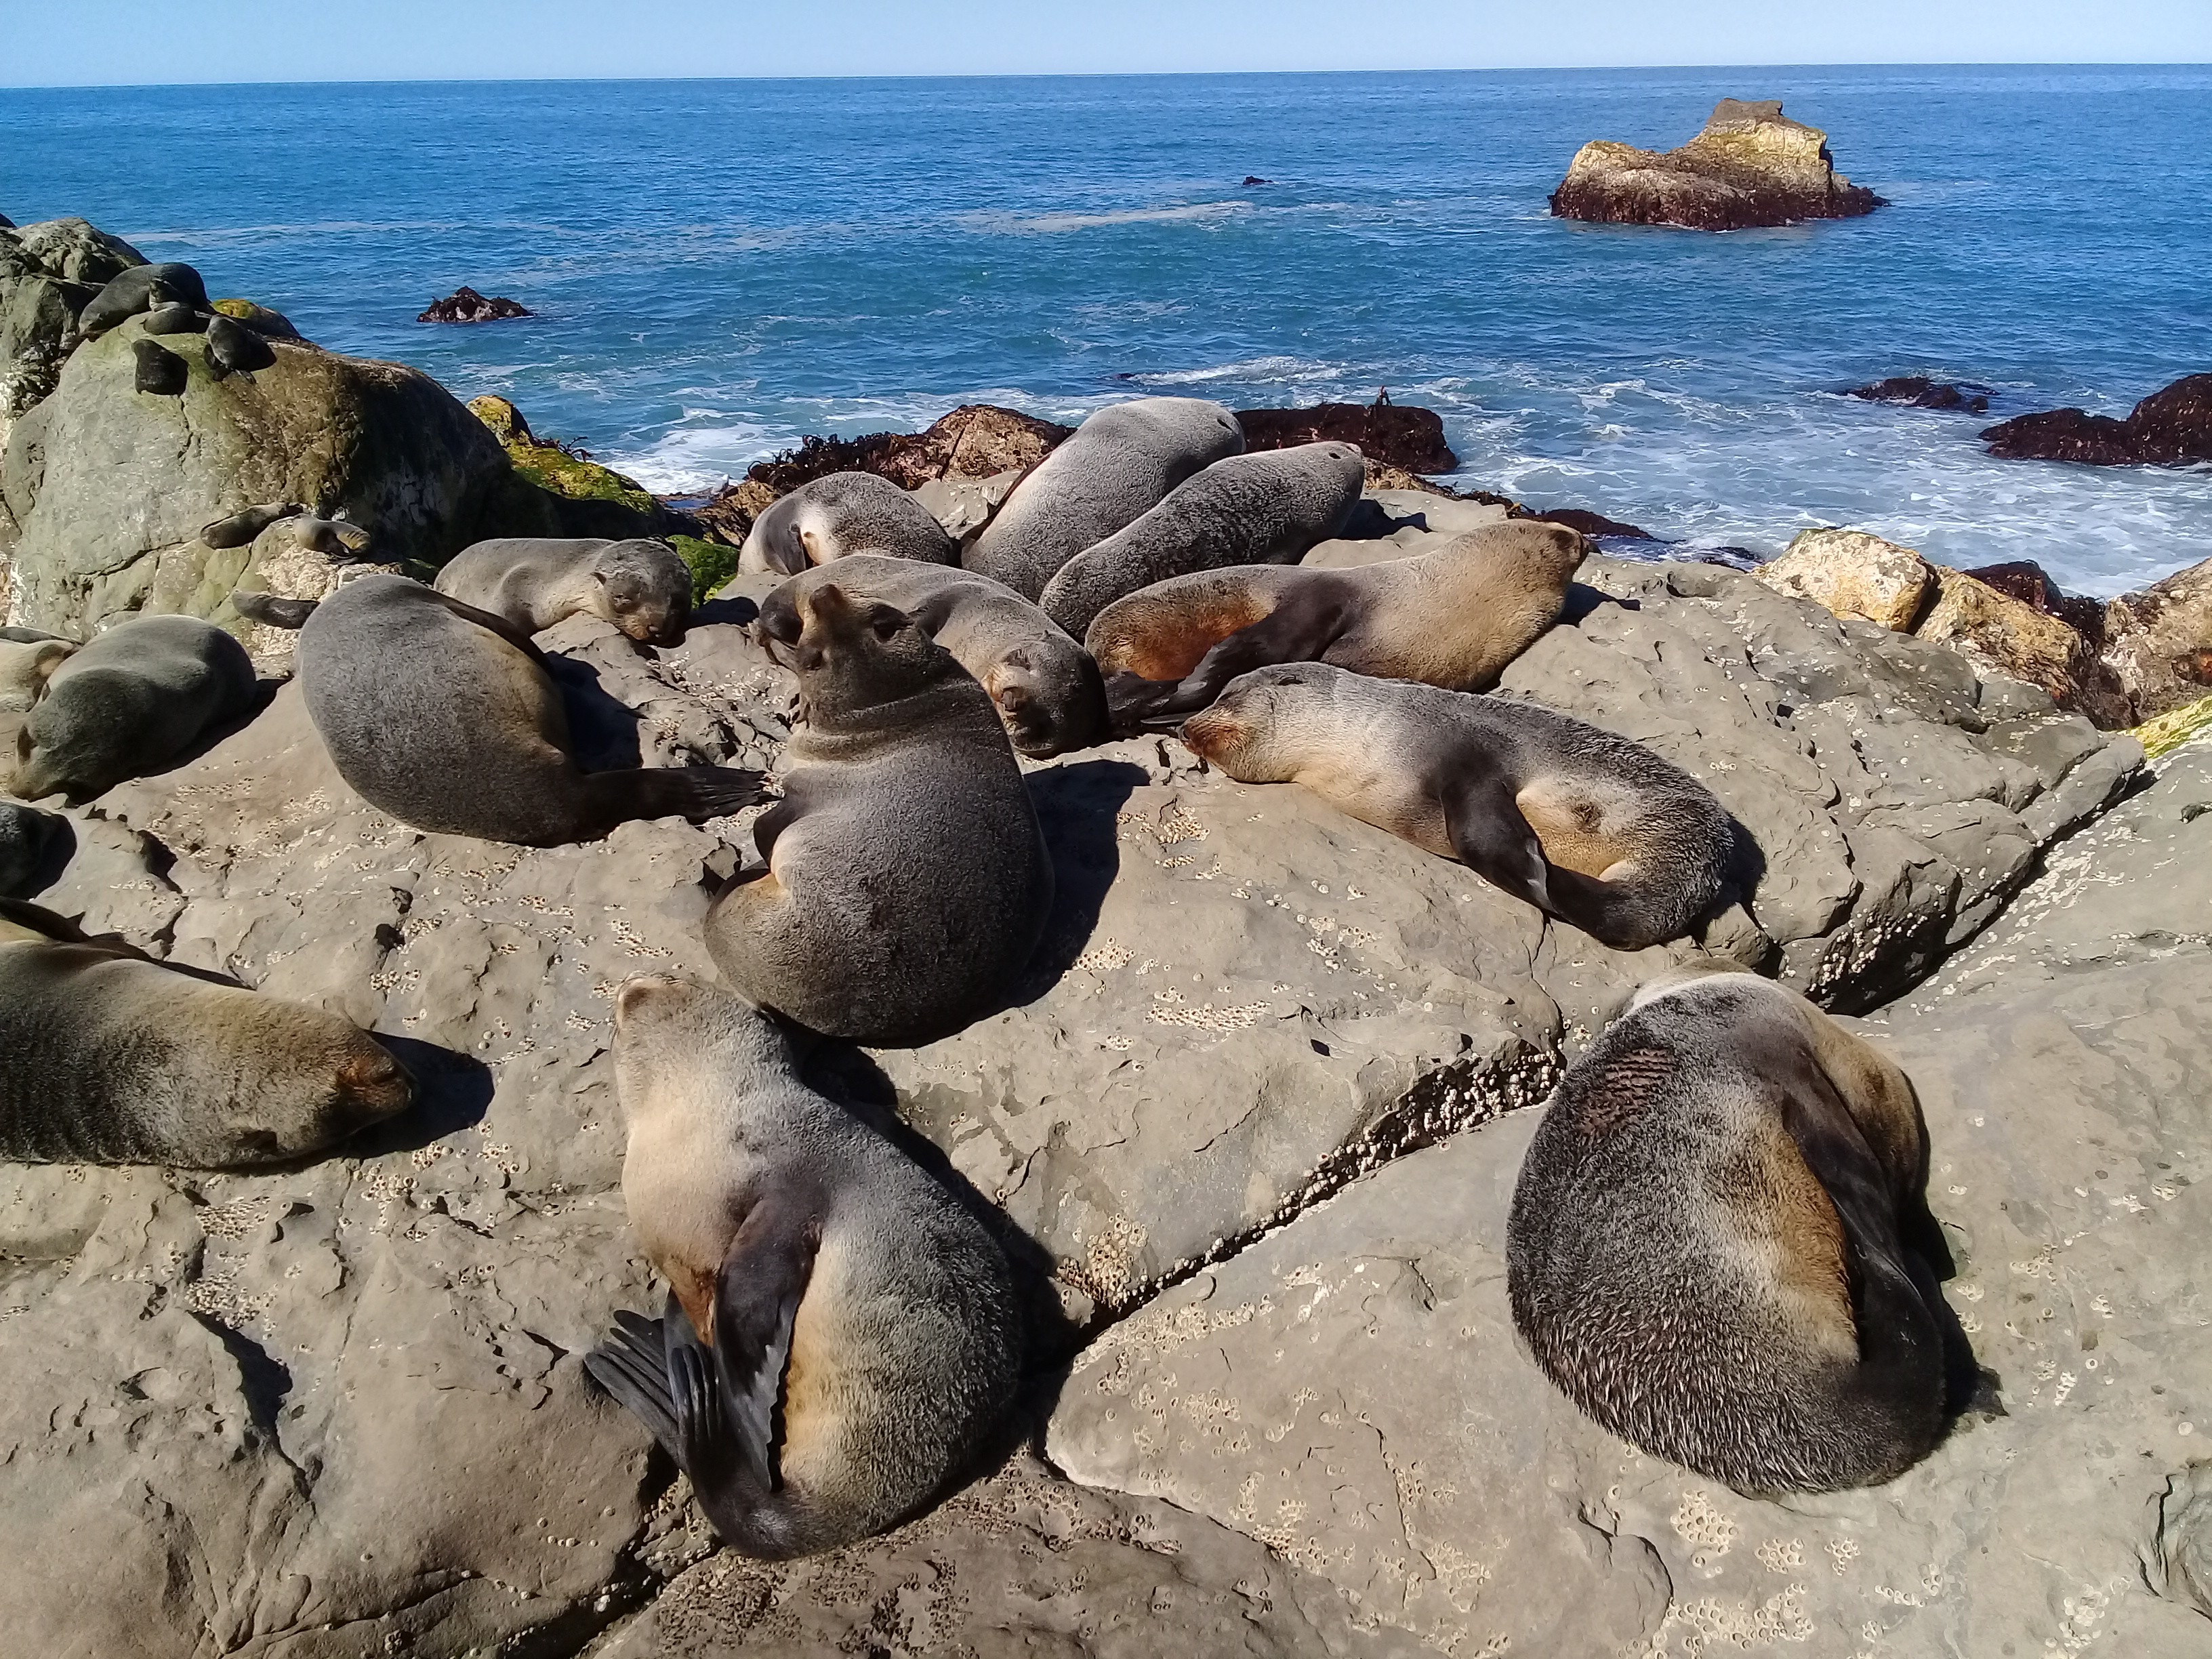 Snoozing fur seal pups